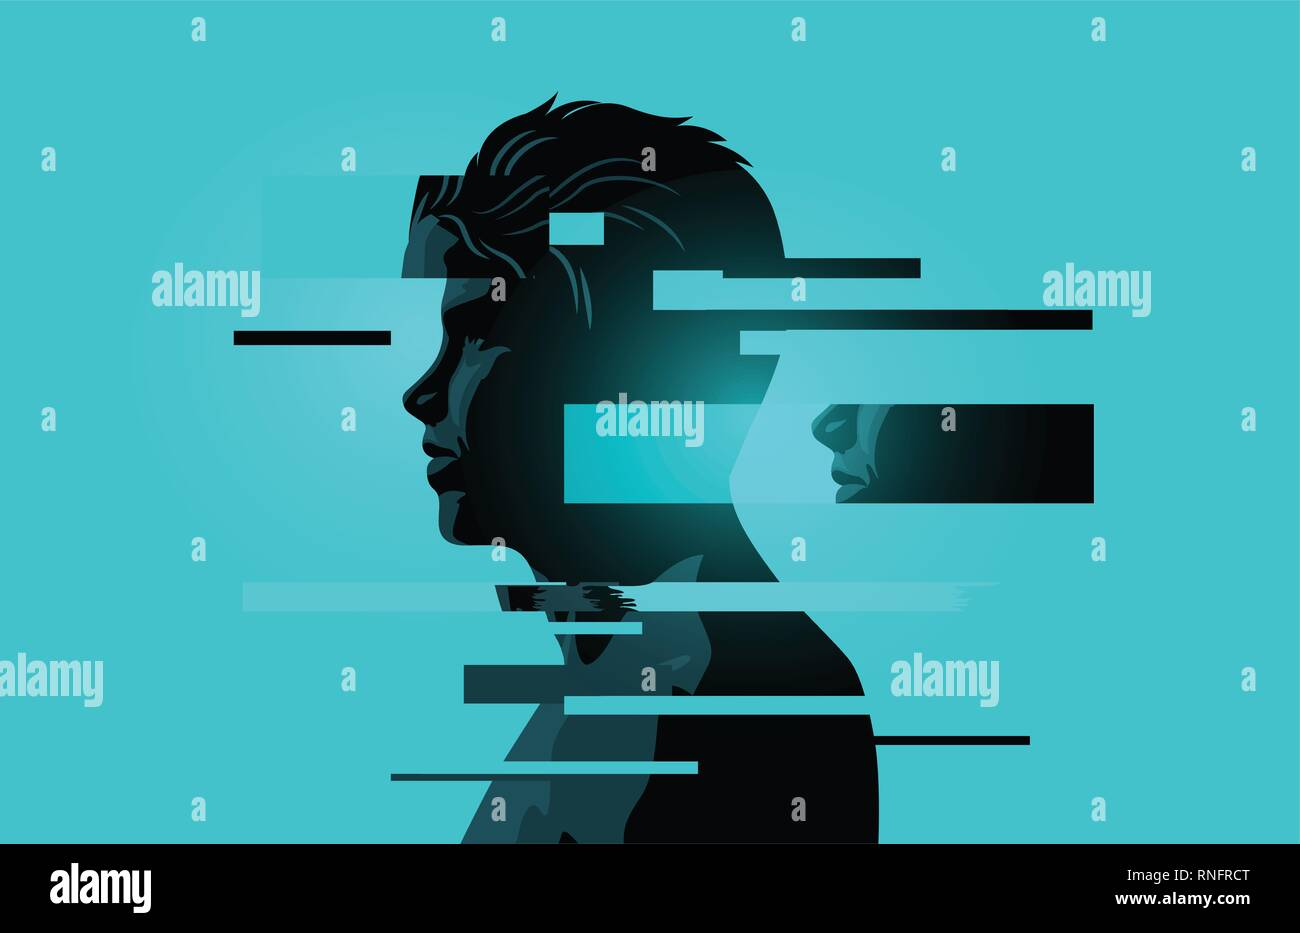 Image Of a Man With Glitch Fragments.Mental health issues. Anxiety, mindfulness and awareness concept. Vector illustration. - Stock Vector